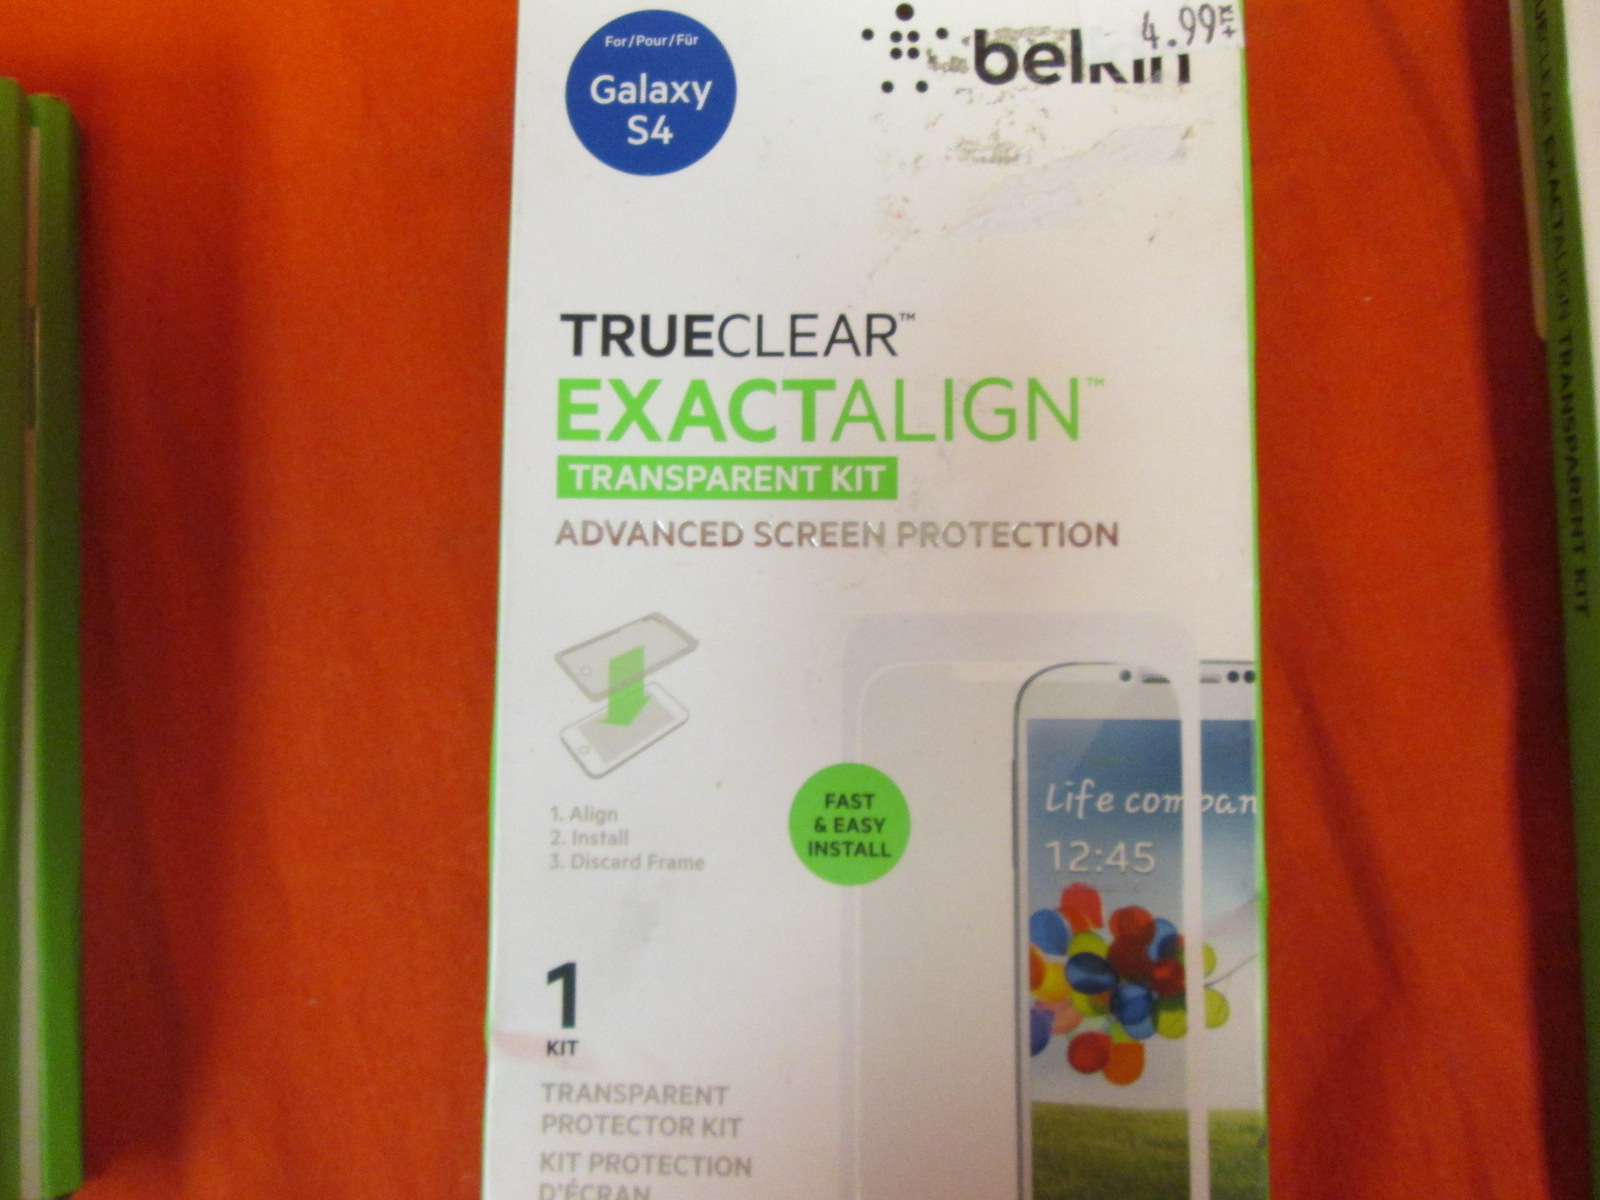 Belkin 0914BF Galaxy S4 True Clear Exactalign Screen Protector